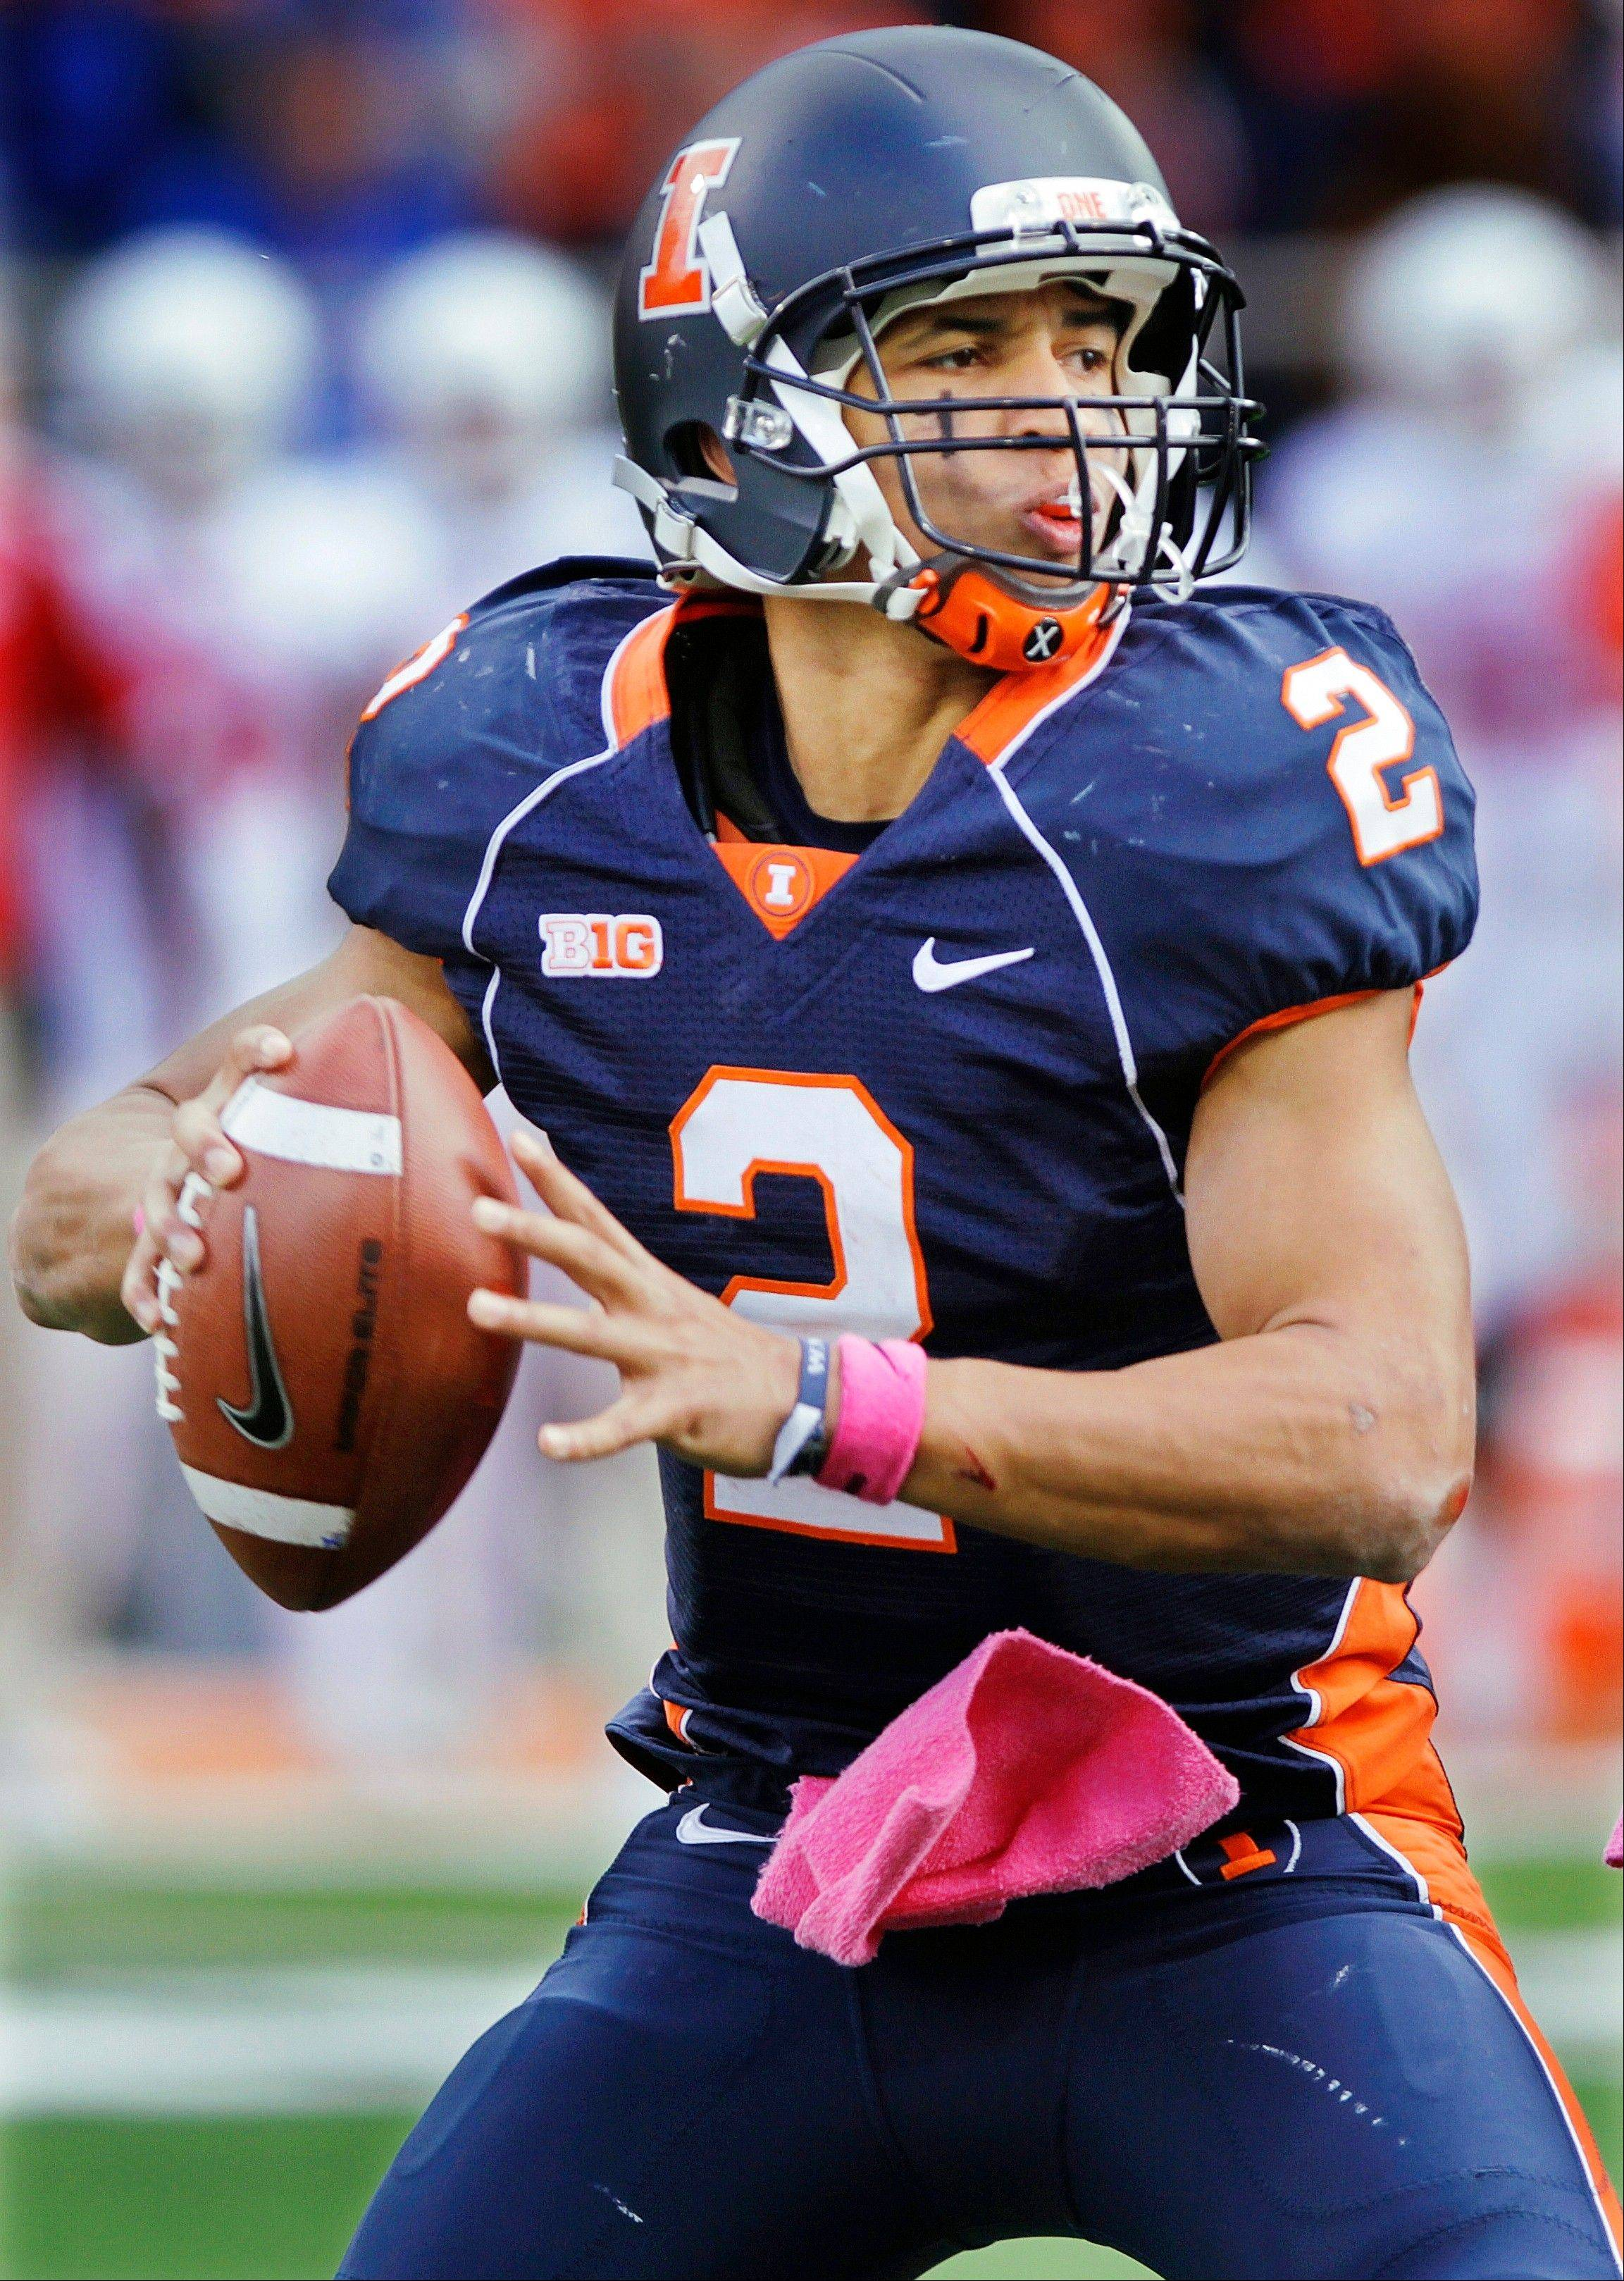 Illinois quarterback Nathan Scheelhaase drops back to pass during the second half Saturday against Indiana in Champaign. The Illini haven't won a Big Ten game all season.